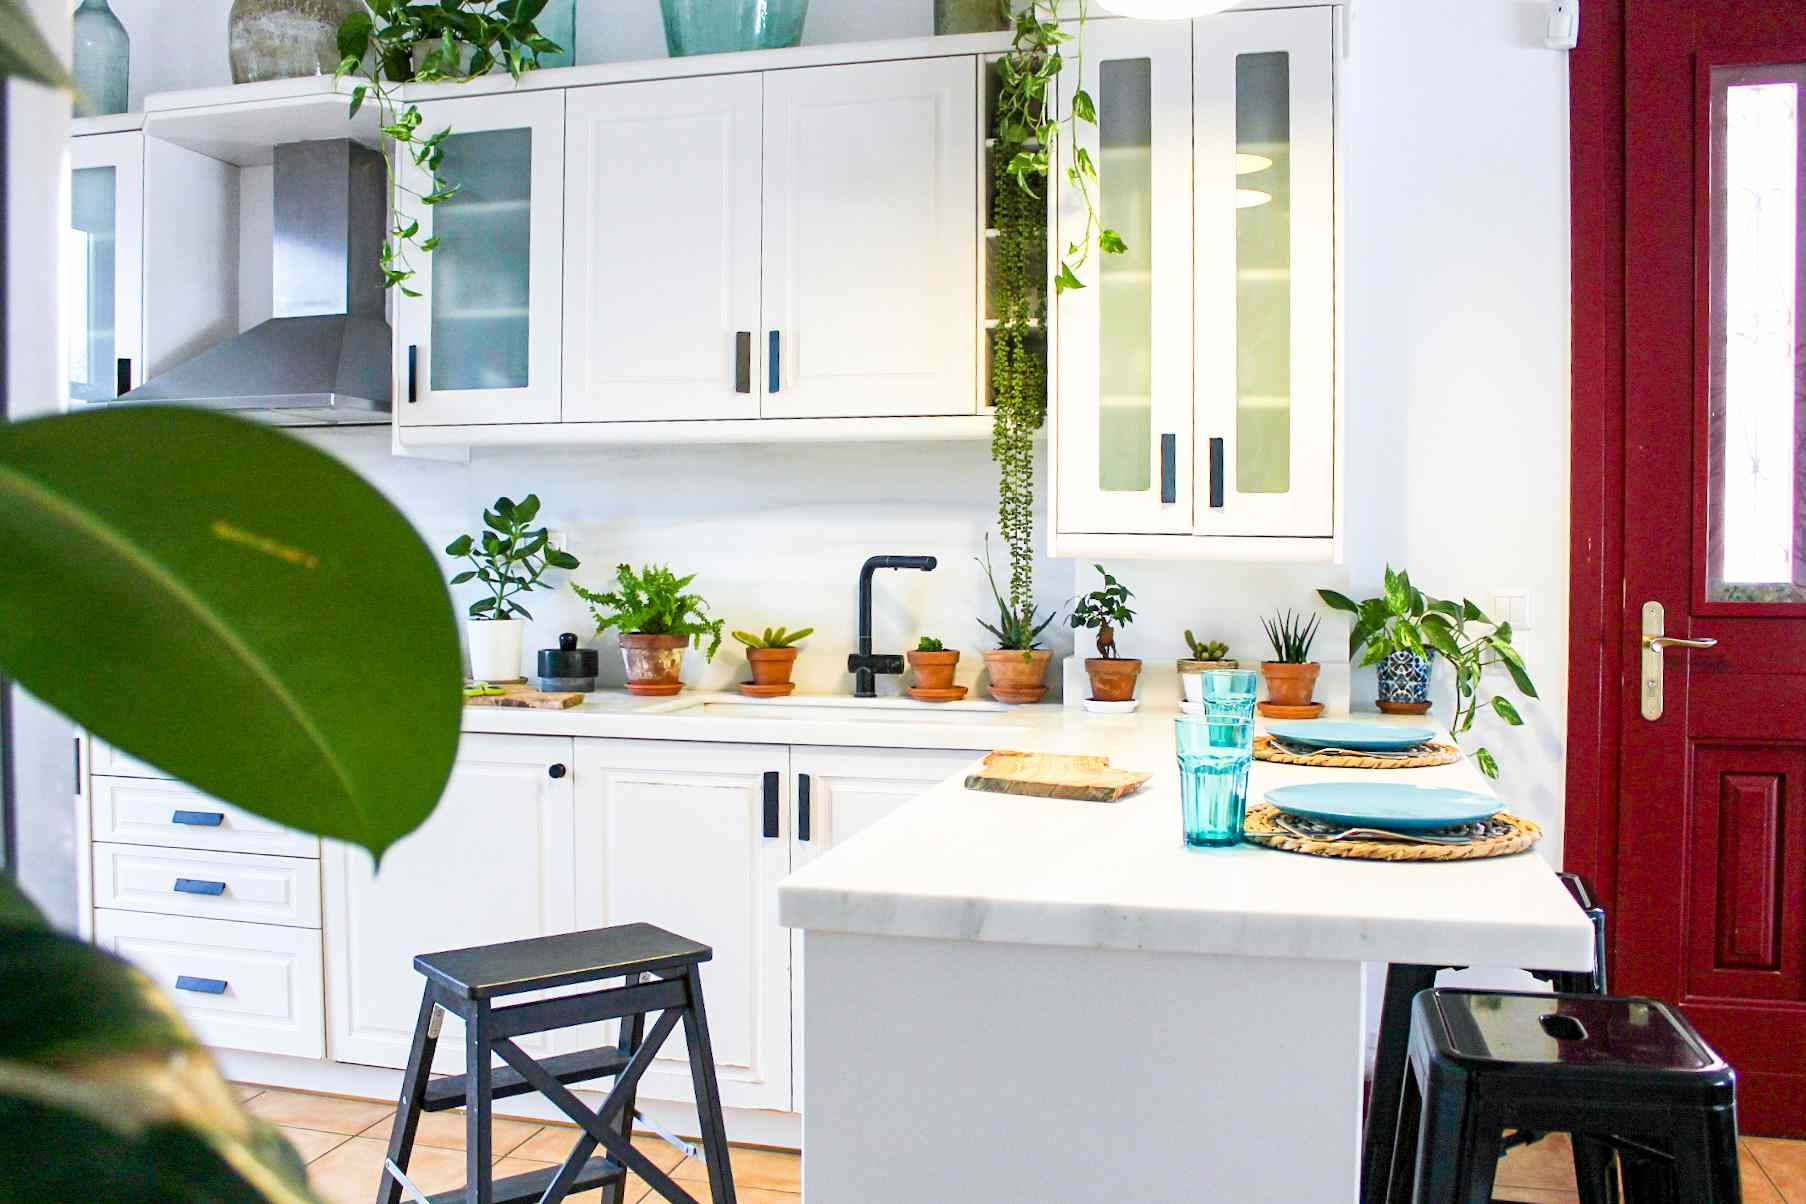 White kitchen filled with plants.